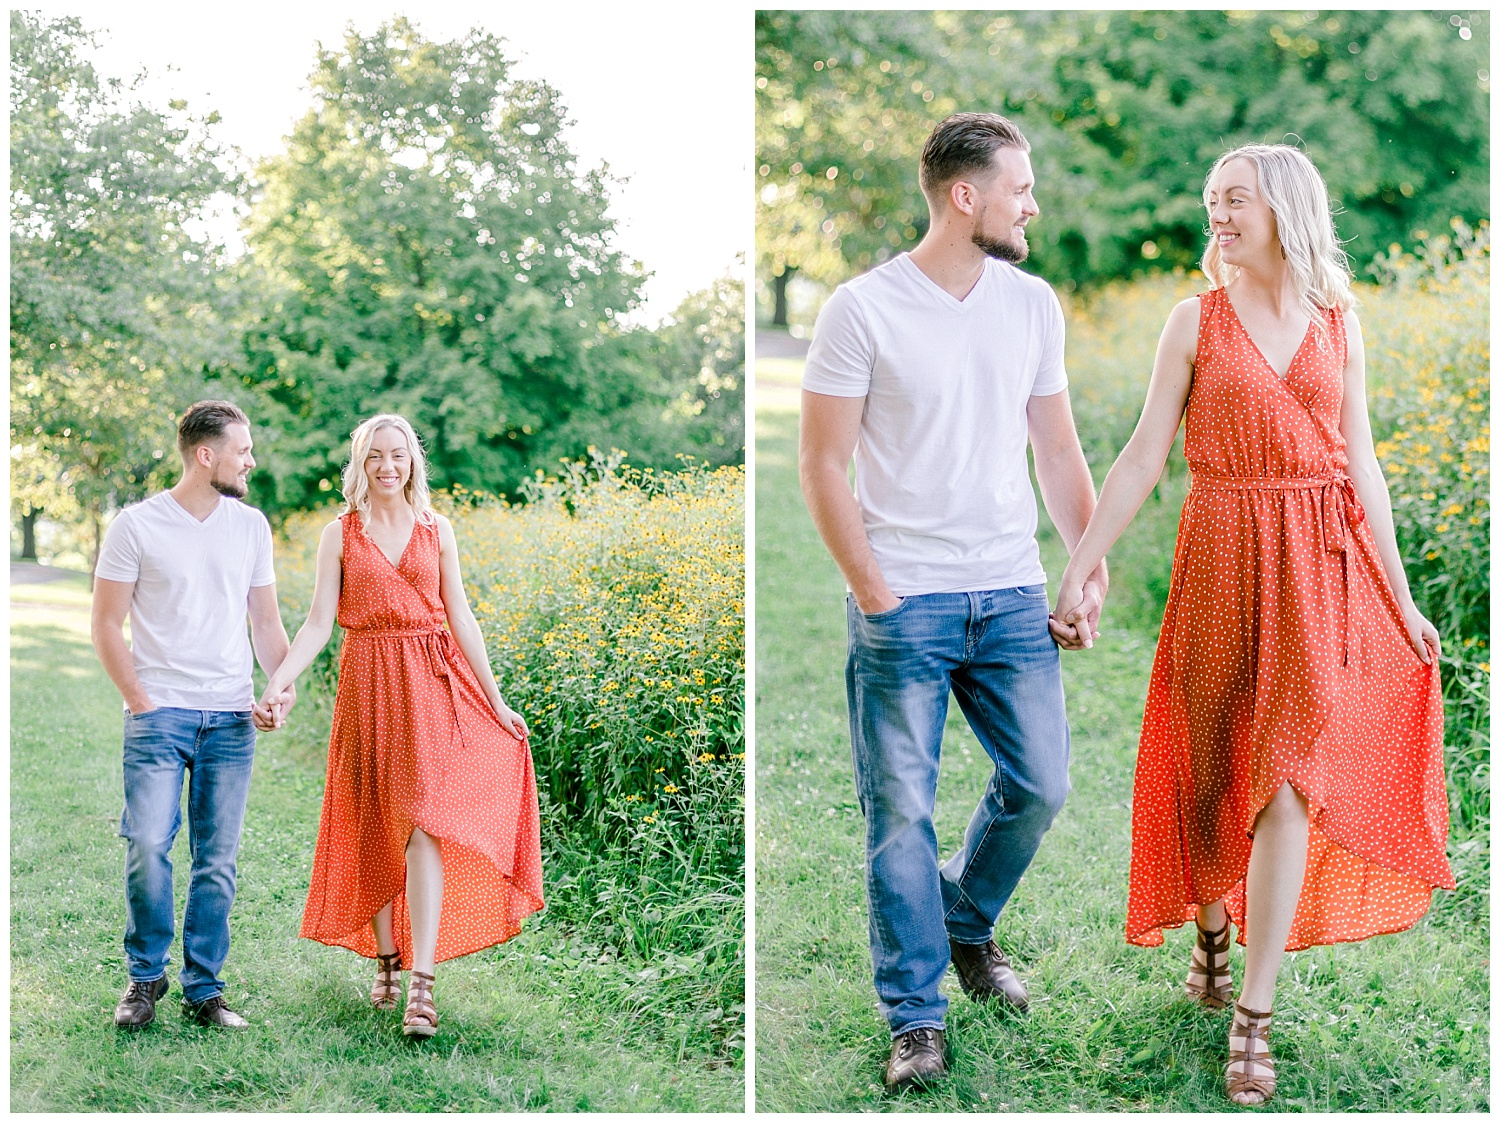 Blue Marsh Lake Reading Pennsylvania flower field golden hour engagement session by PA based wedding and lifestyle photographer Lytle photography_0005.jpg